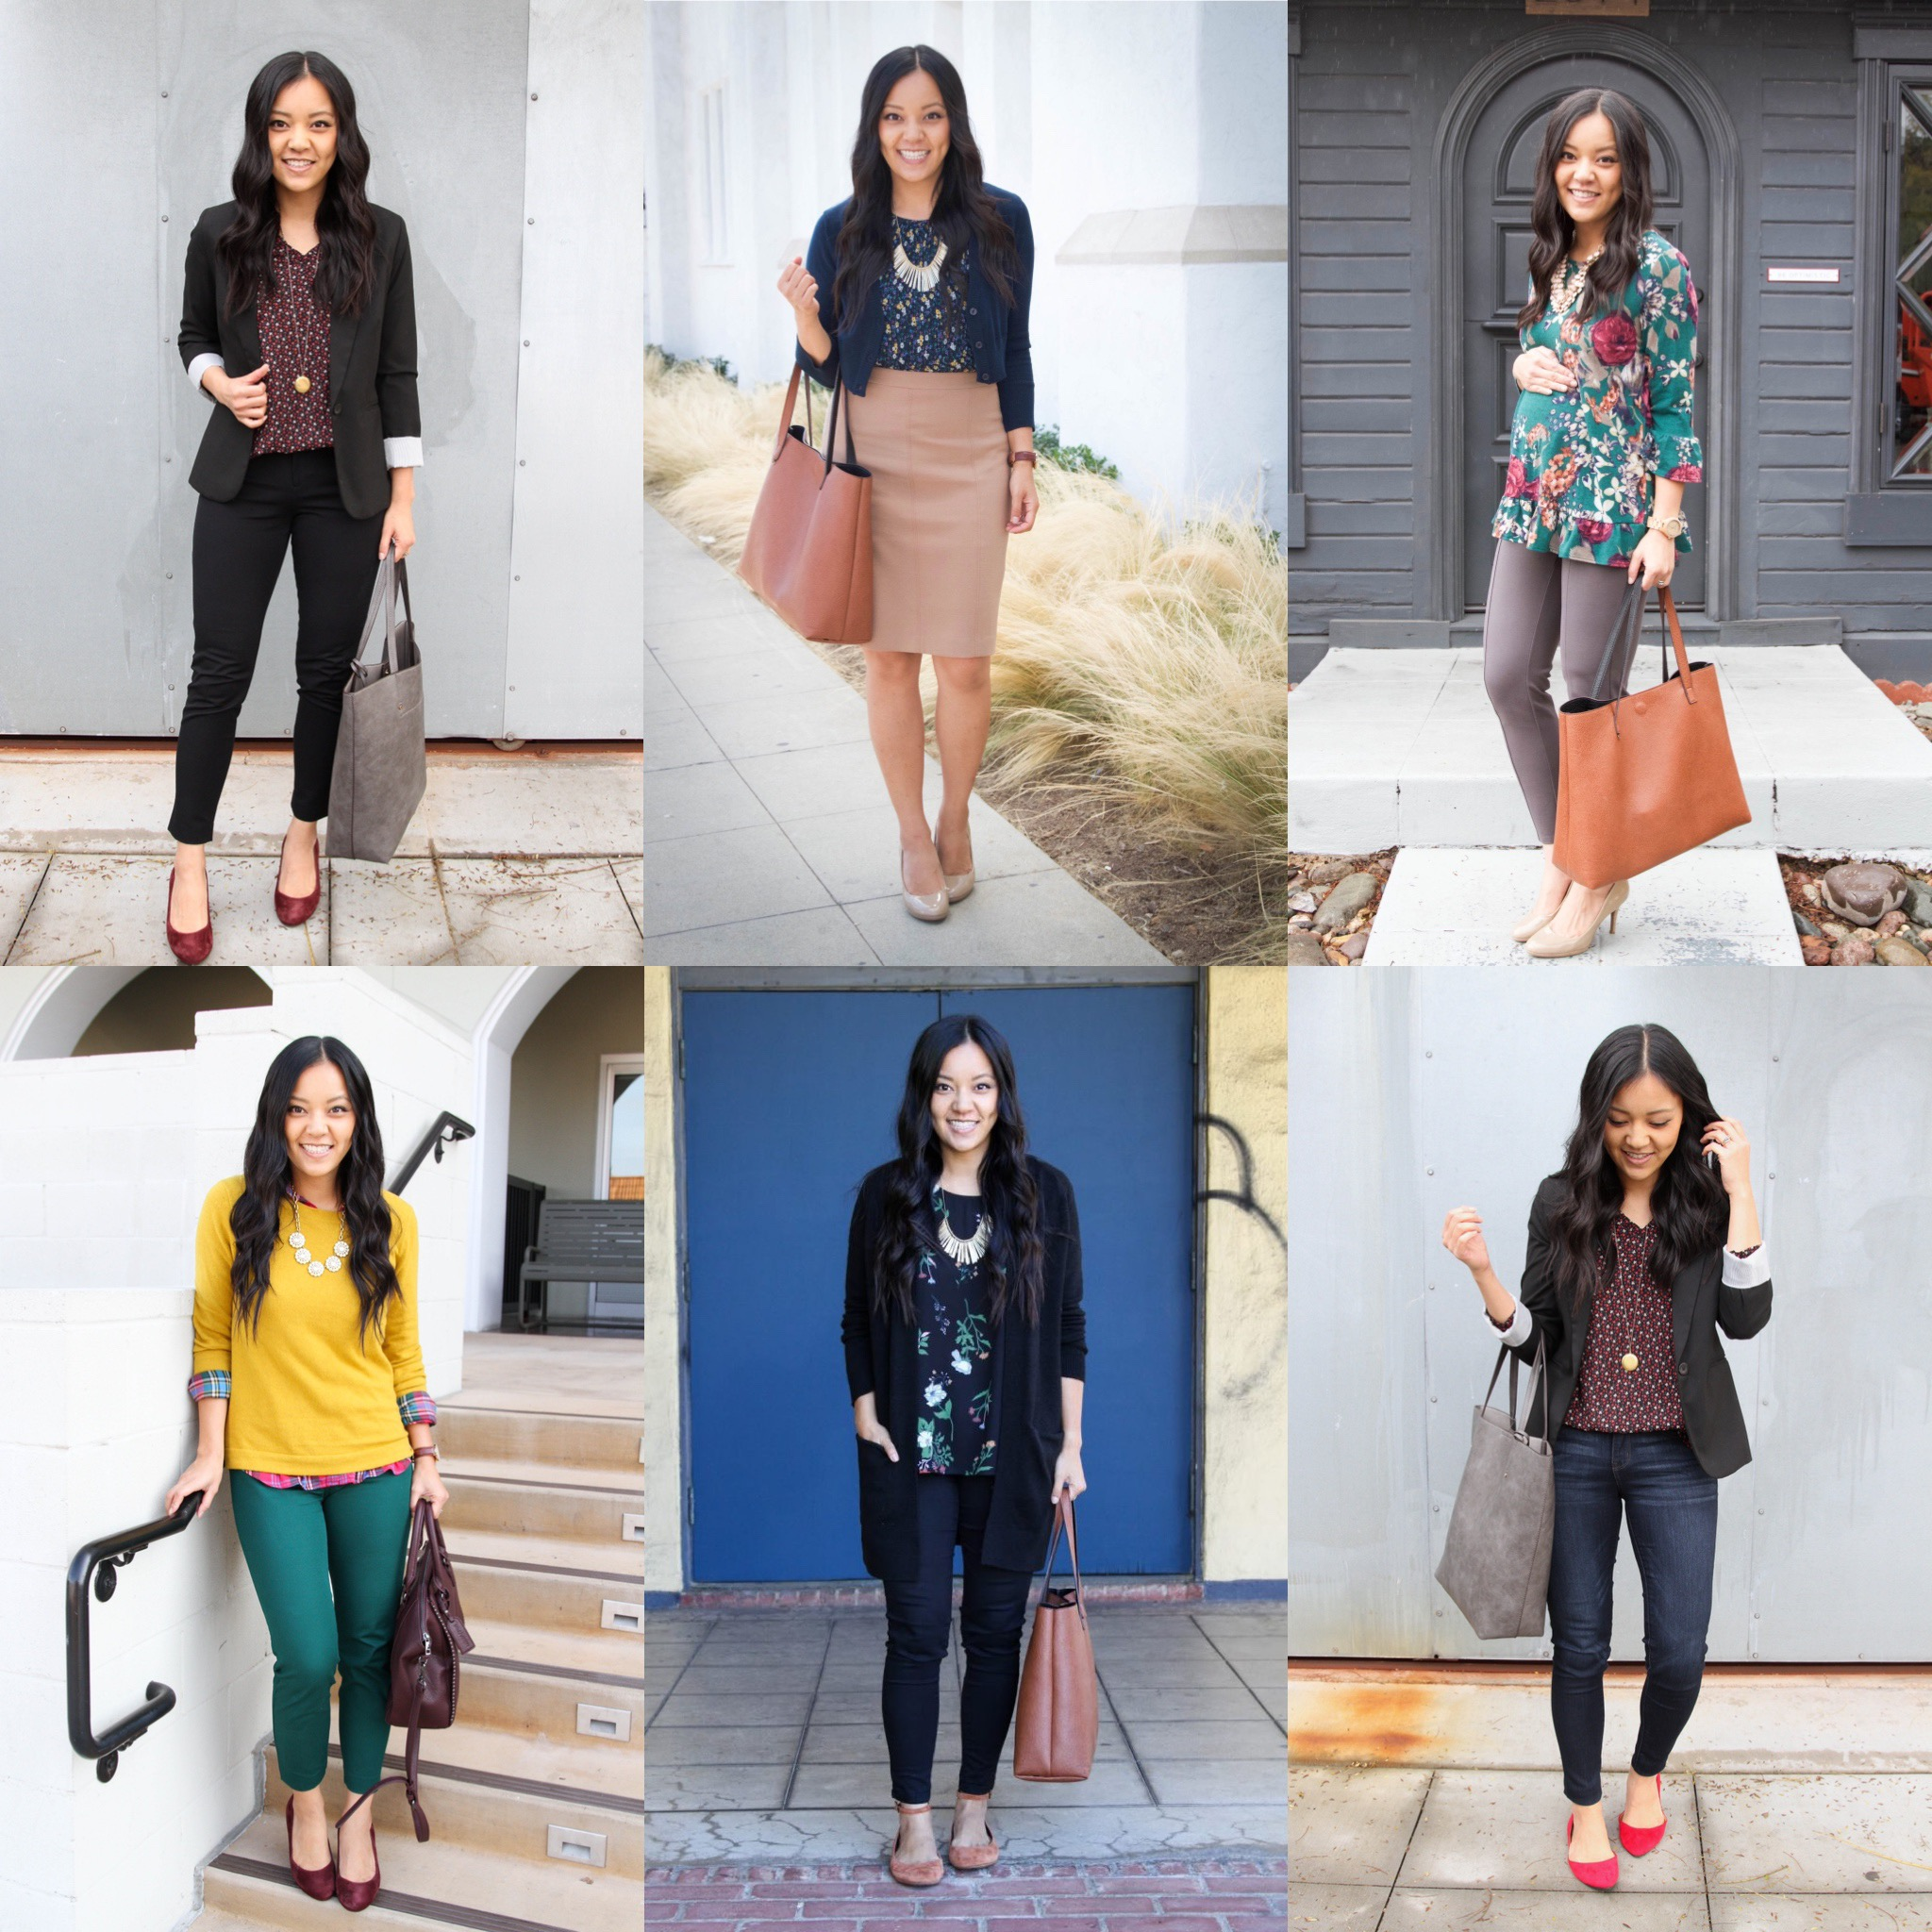 Business Casual Outfits - from dressier to casual